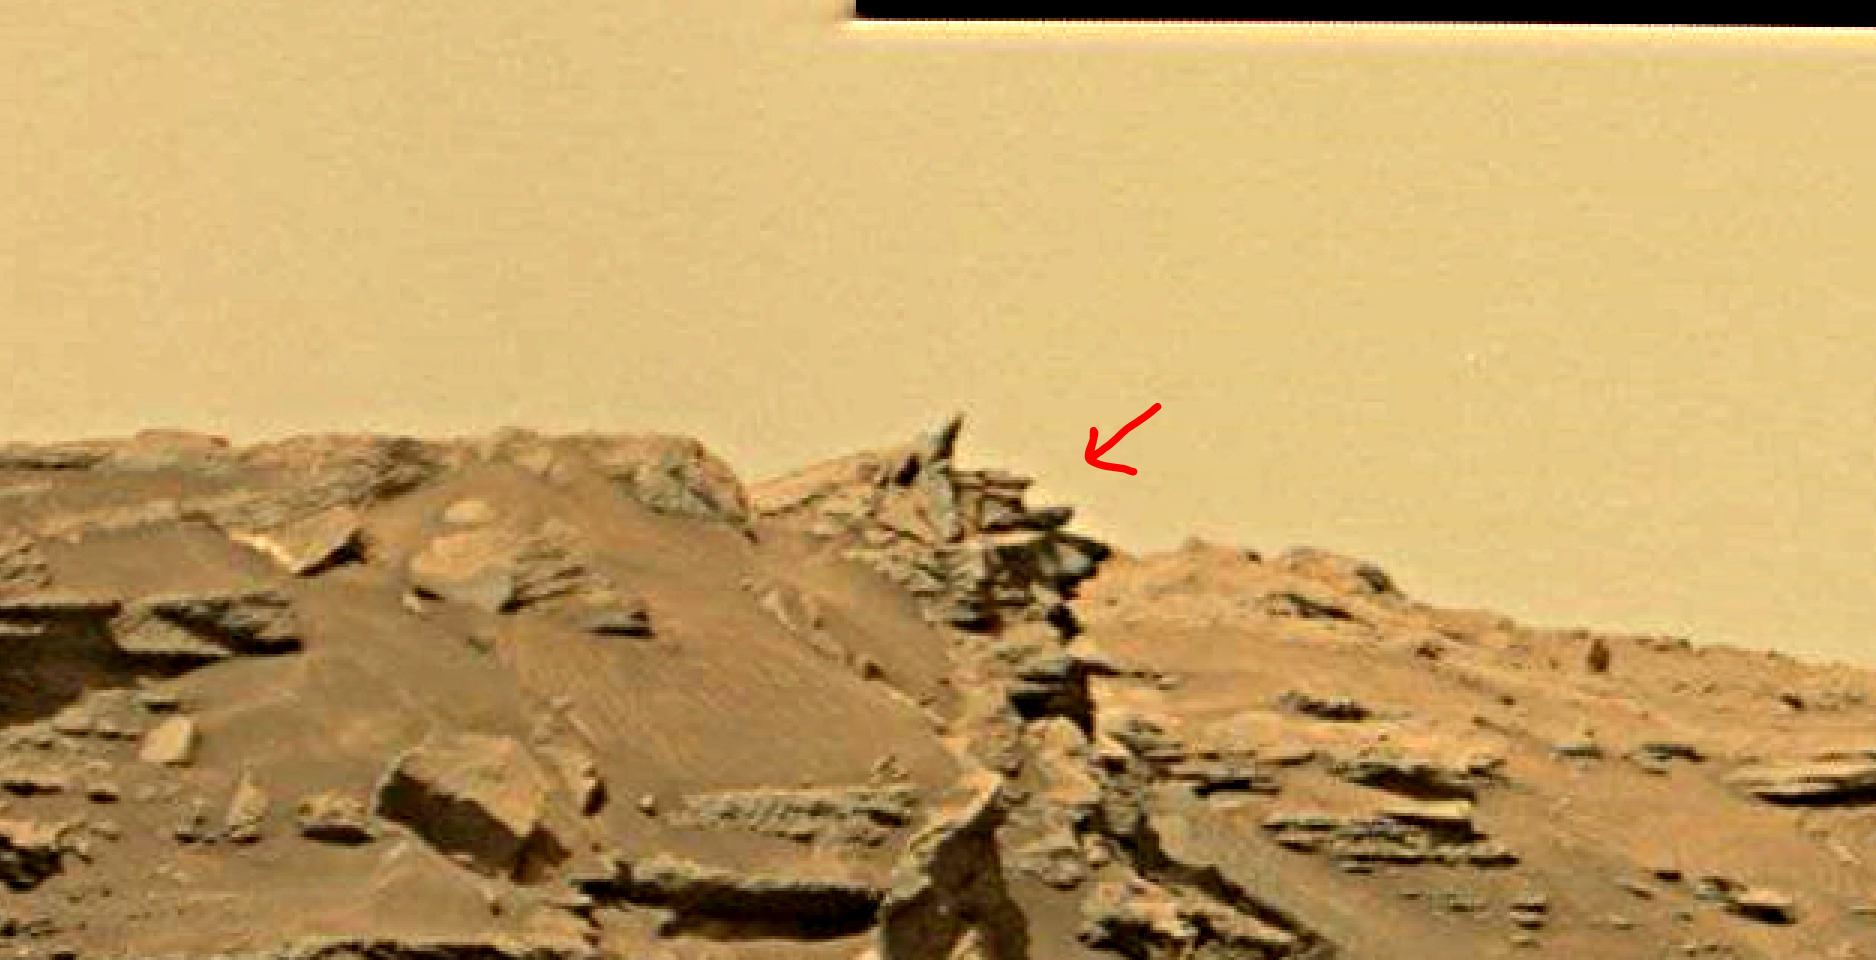 mars-sol-1454-anomaly-artifacts-7-was-life-on-mars